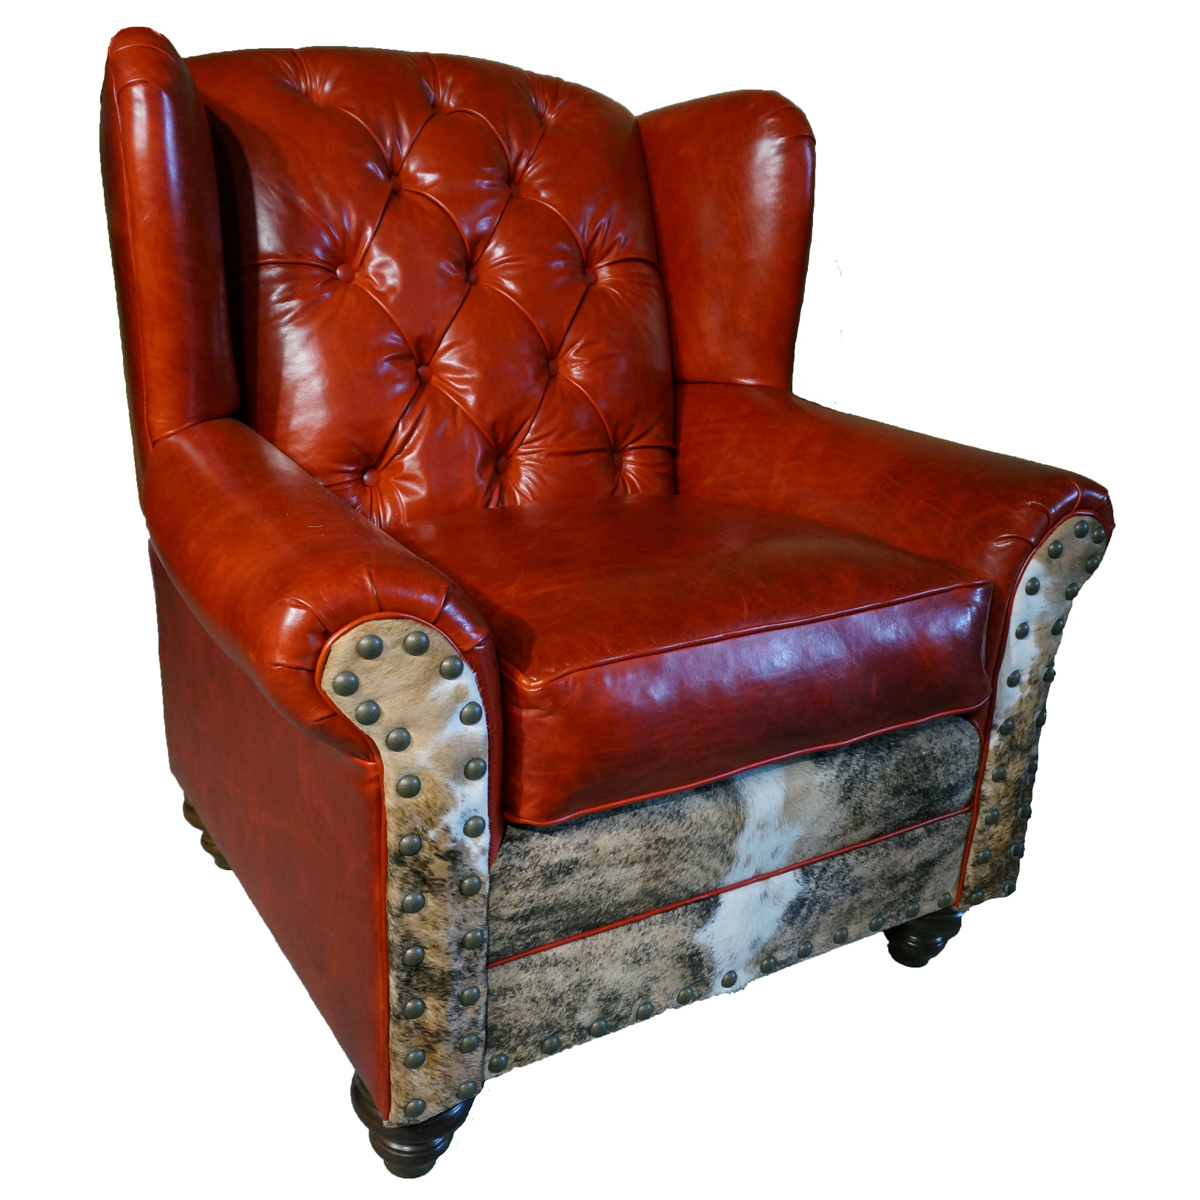 Roja Tufted Oversized Wingback Chair